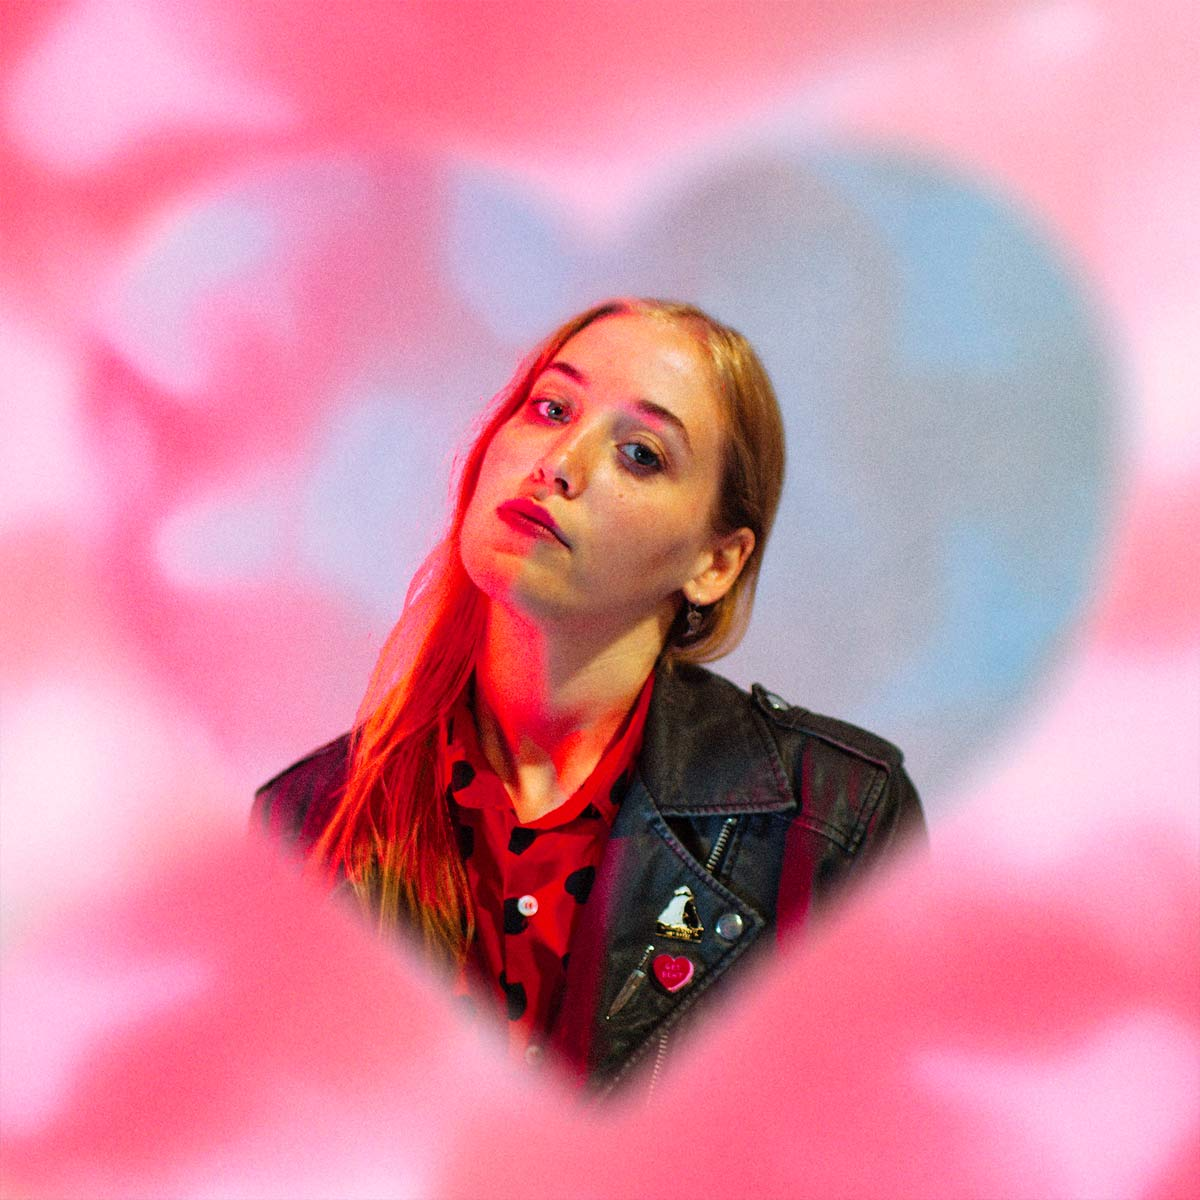 "Hatchie - Sugar & Spice EP - While Hatchie arguably wrote the best song of the year with ""Sure"", a shoegaze daydream of a track, glistening in swirls of guitar and synth reveries, her EP did not end up on my Top Ten list strictly because it's not a full release. I loved every track she released on the EP, but I know she will have a full LP next year and it will most likely land on my Top Ten. If this EP is any indication, I have a strong inkling that her career is one I will watch for the entirety of my life, as long as she continues to write music."